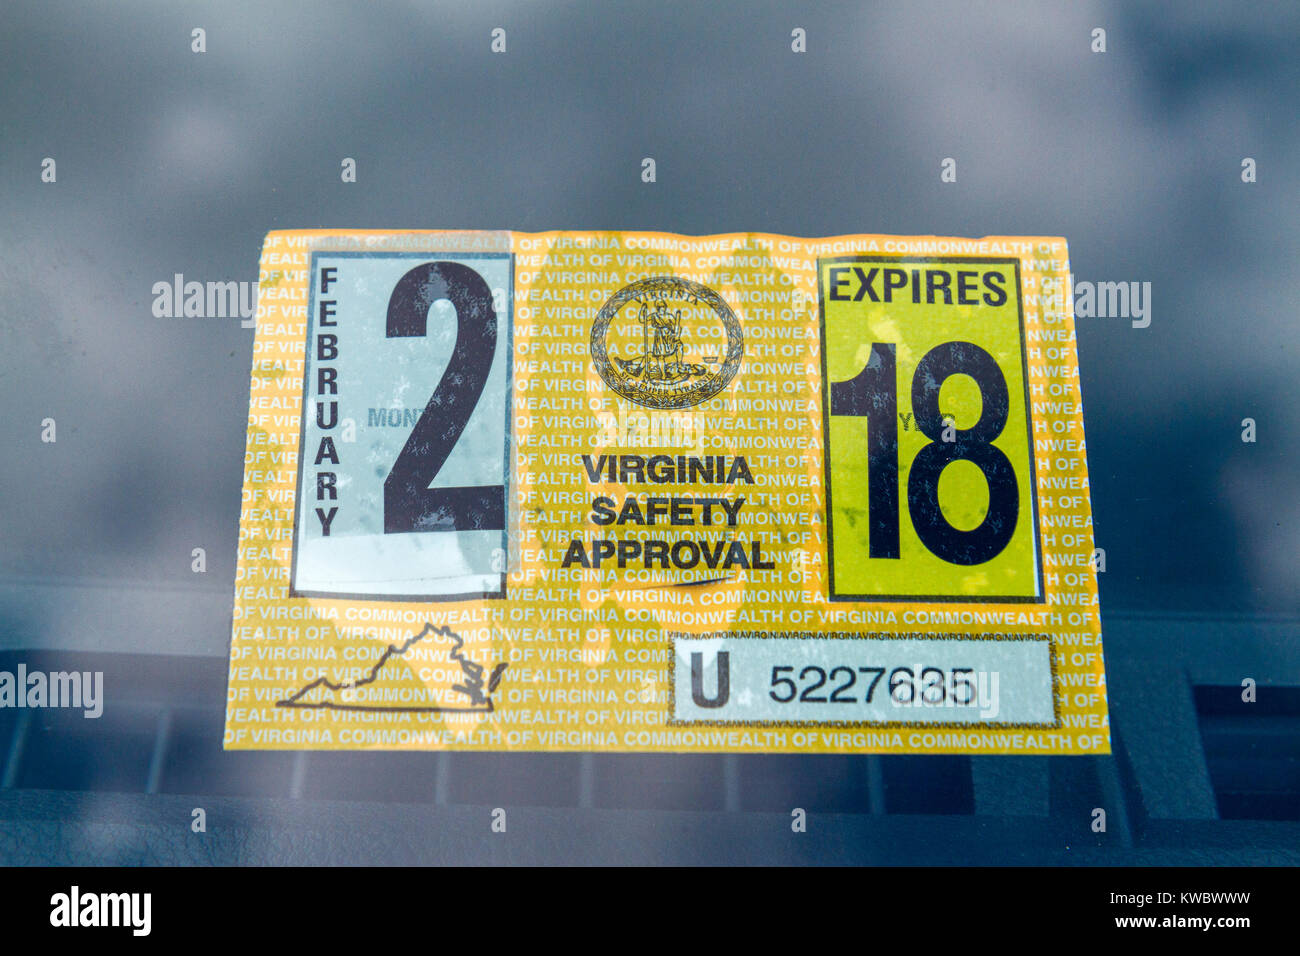 A Virginia Safety Approval sticker from the Virginia Motor Vehicle Safety Inspection Program, United States. - Stock Image